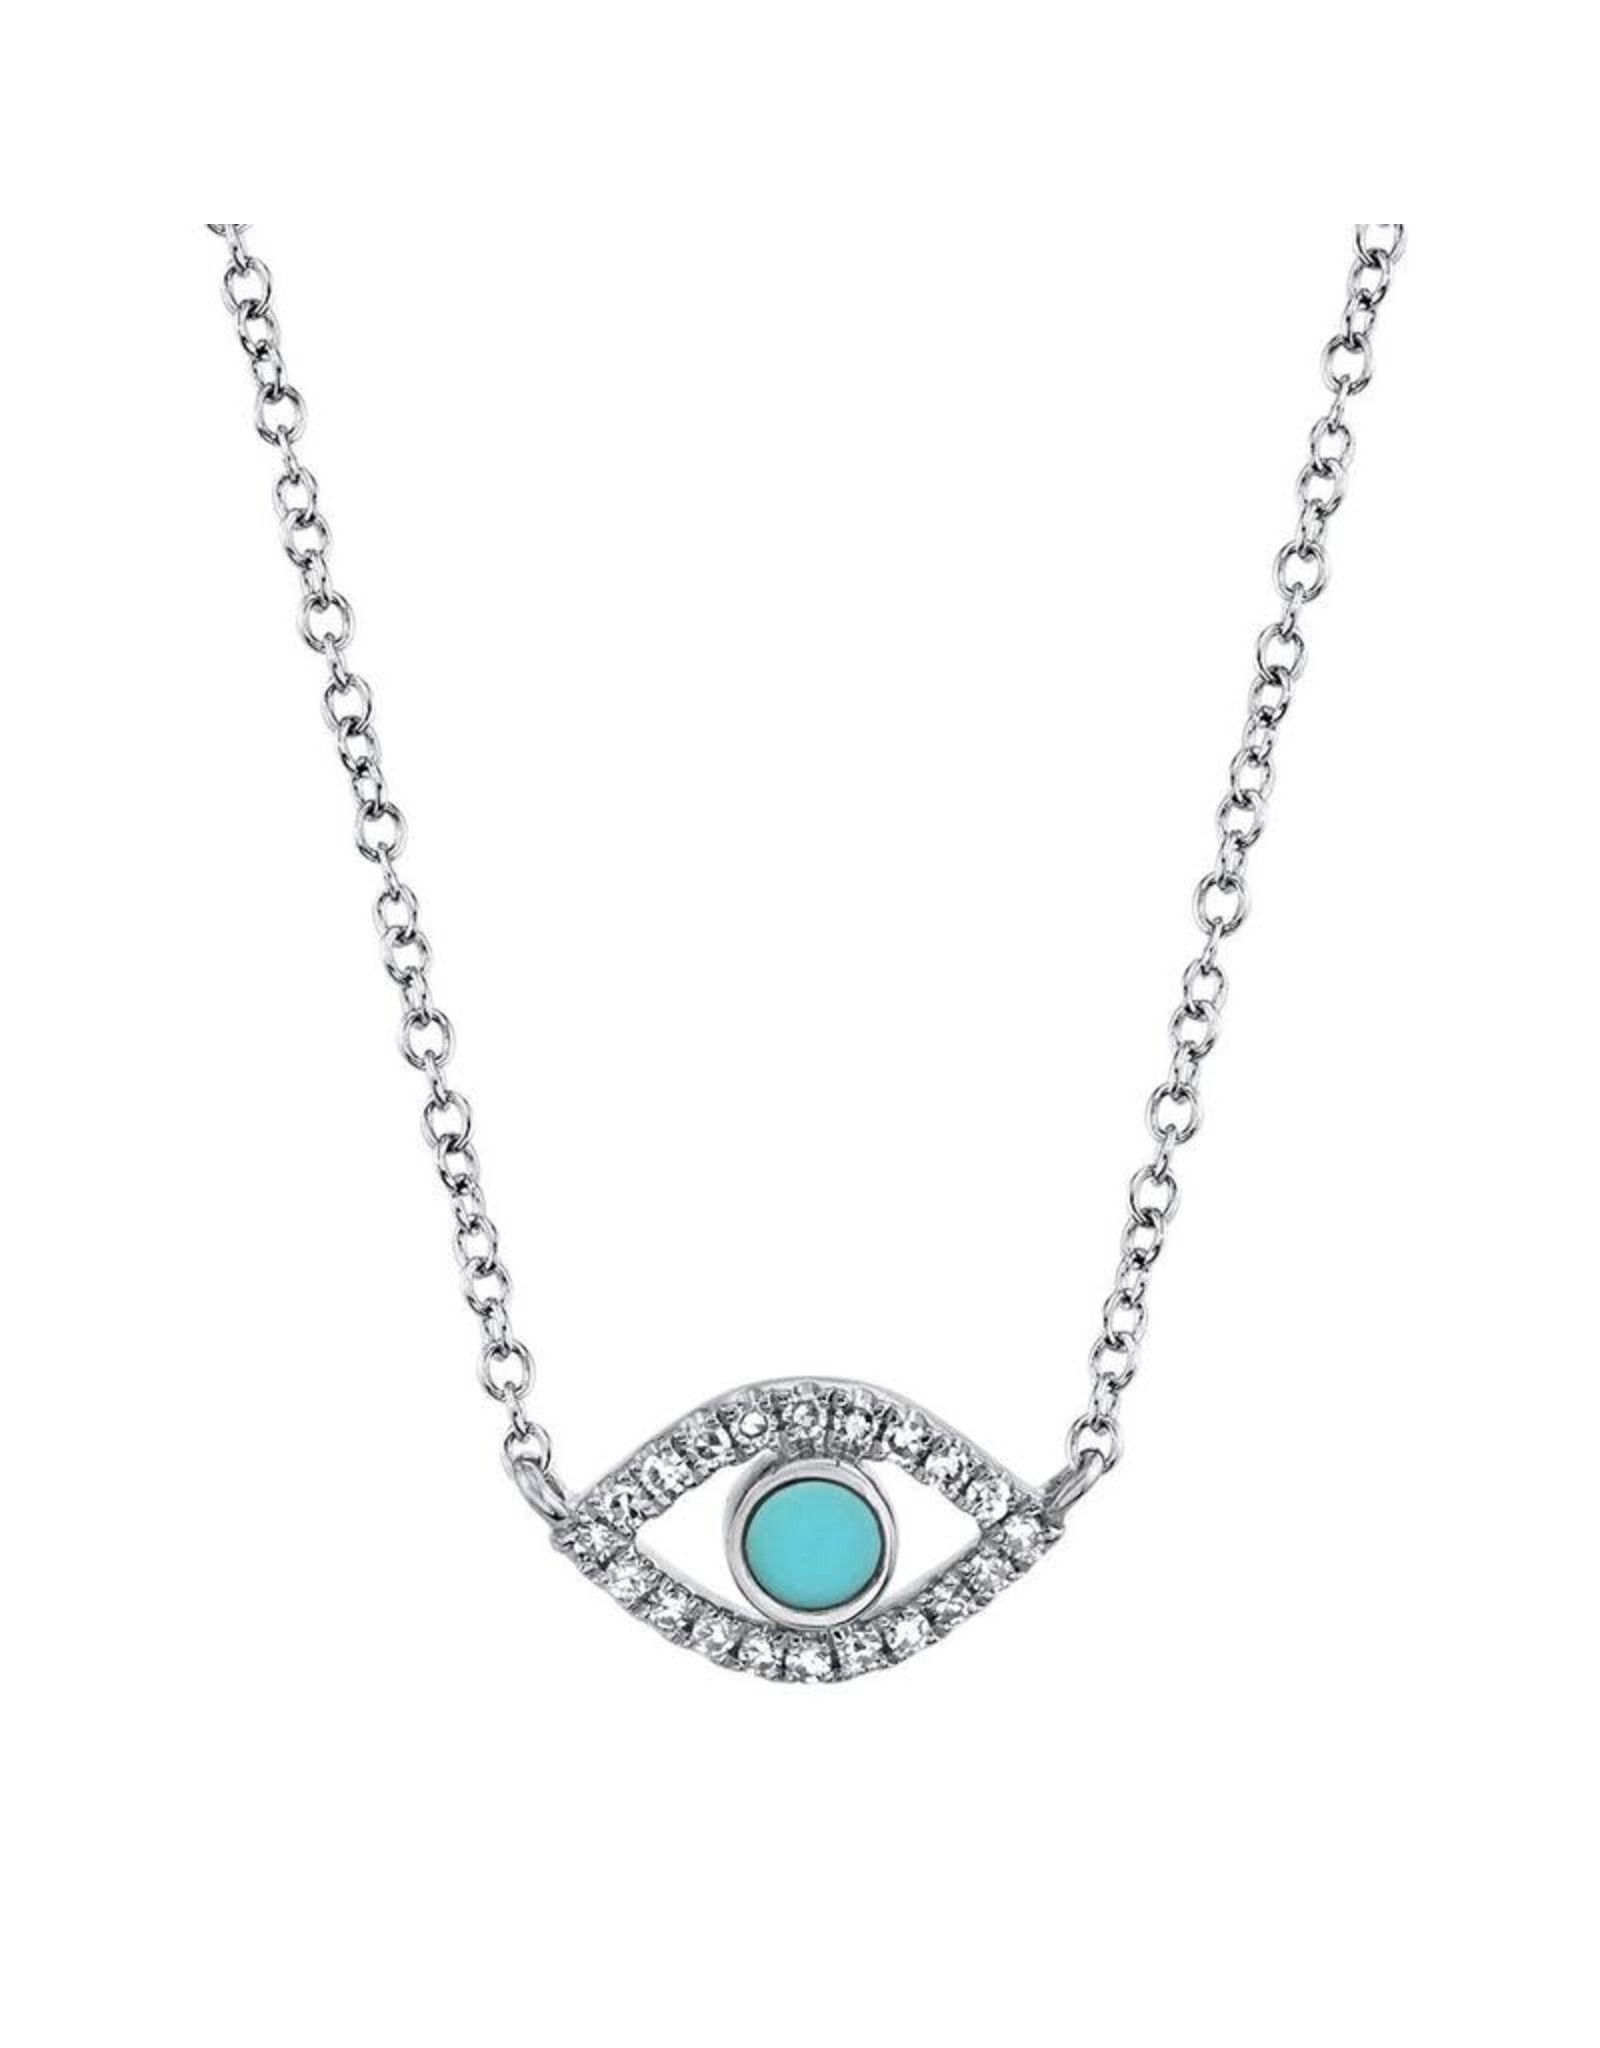 14K White Gold Turquoise and Diamond Evil Eye Necklace, TQ: 0.07ct, D: 0.06ct